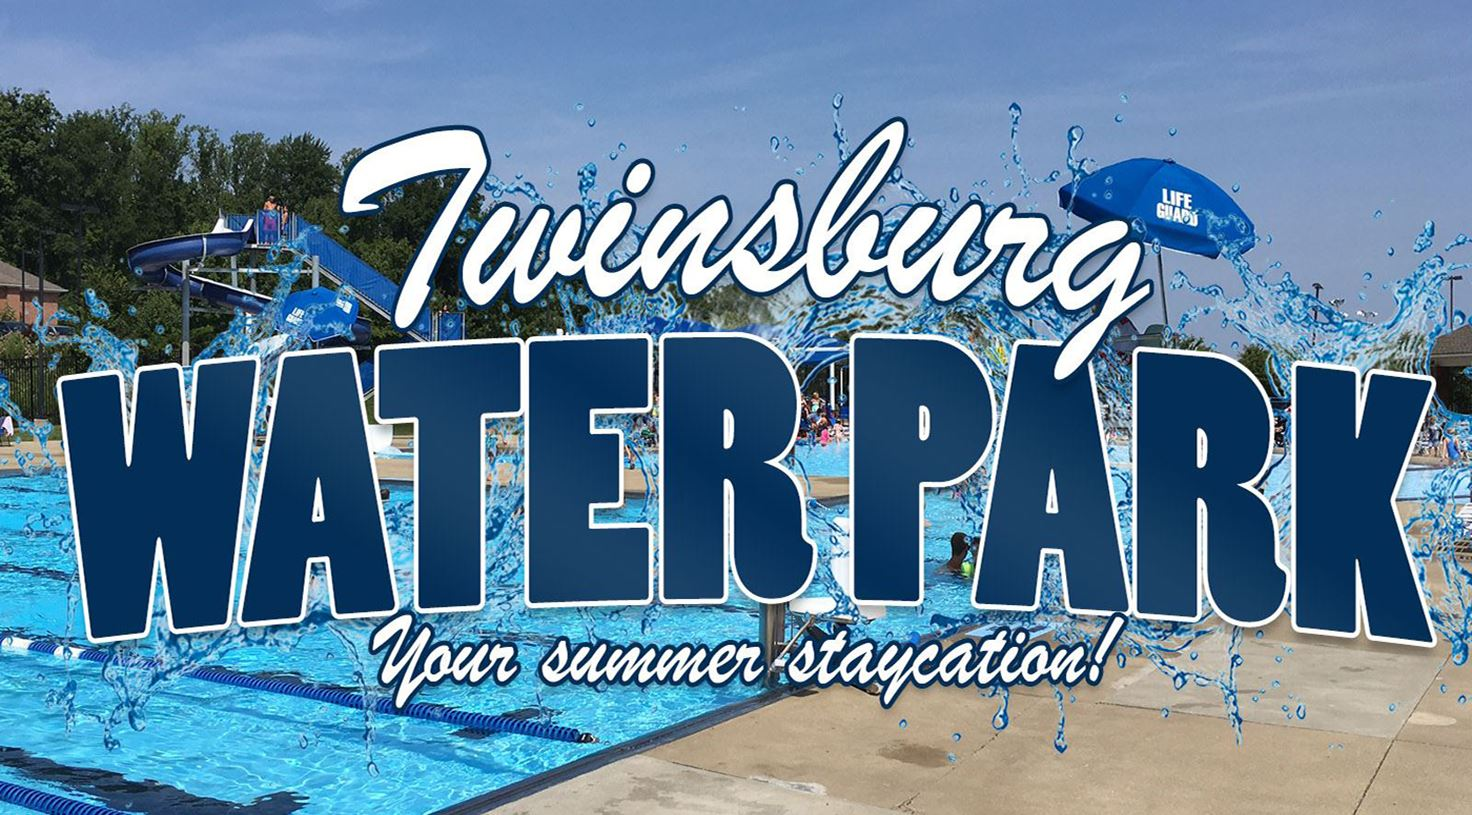 Get Your Bonus Days!  Water Park passes are officially on sale at the Twinsburg Fitness Center and T